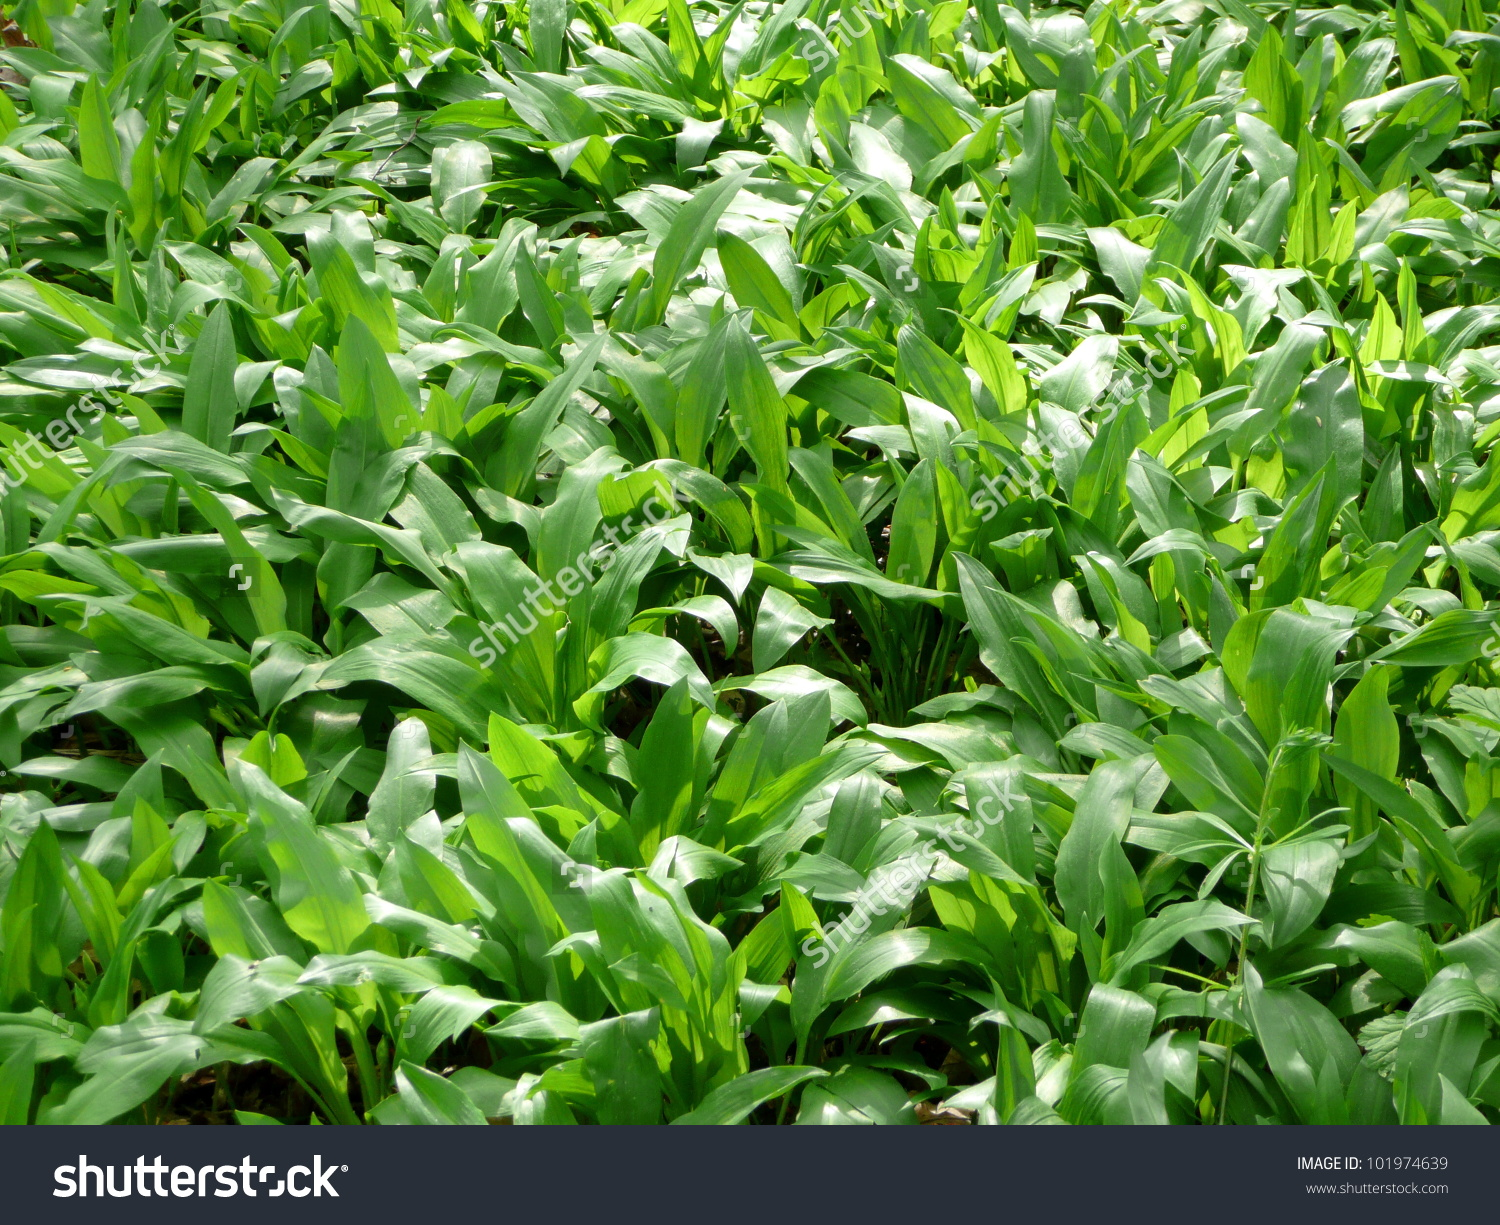 Ramsons Allium Ursinum Buckrams Wild Garlic Stock Photo 101974639.